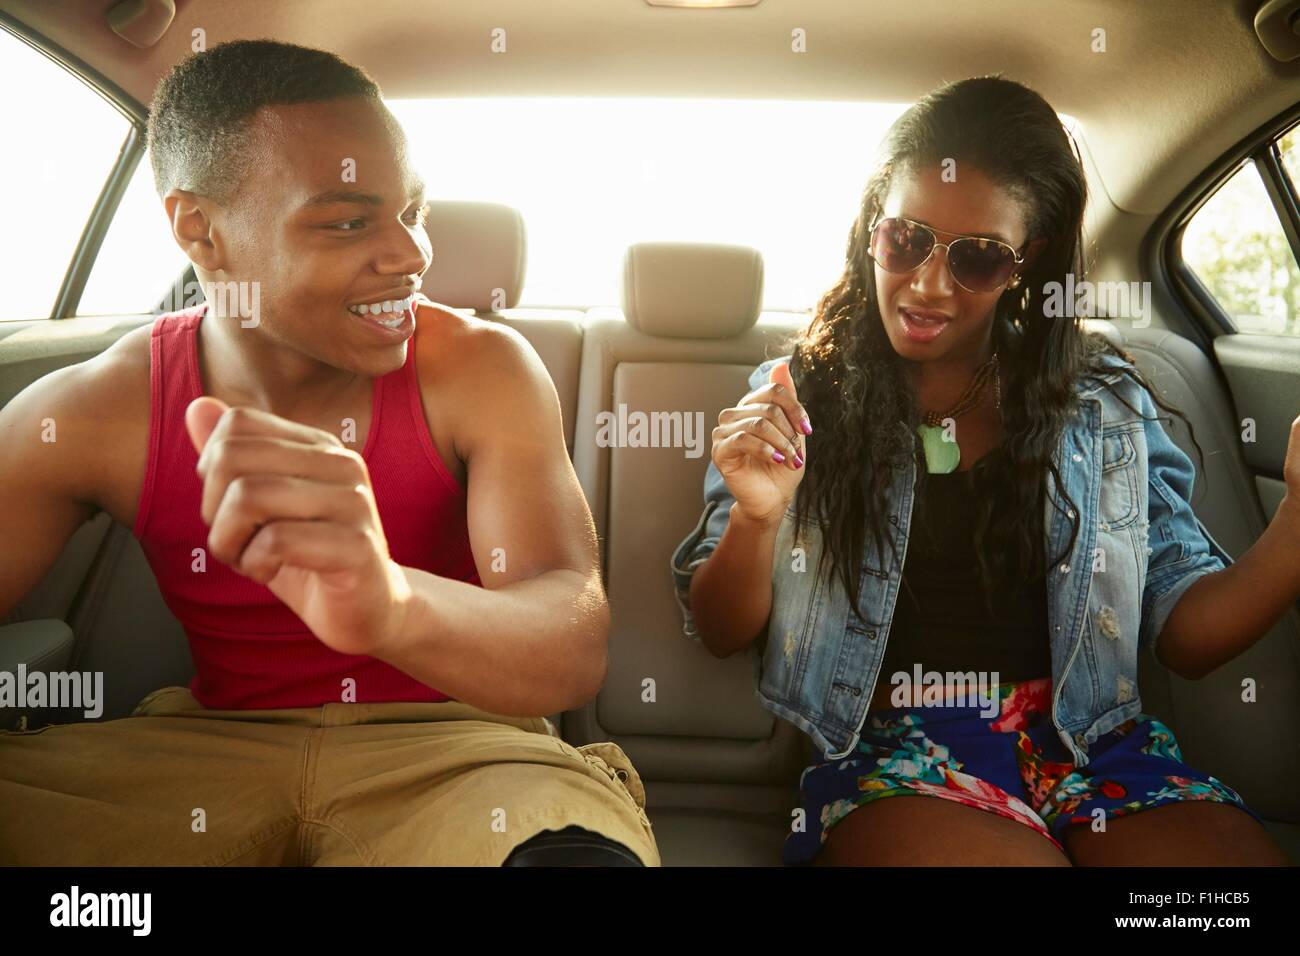 Young couple in back seat of car showing off dance moves - Stock Image